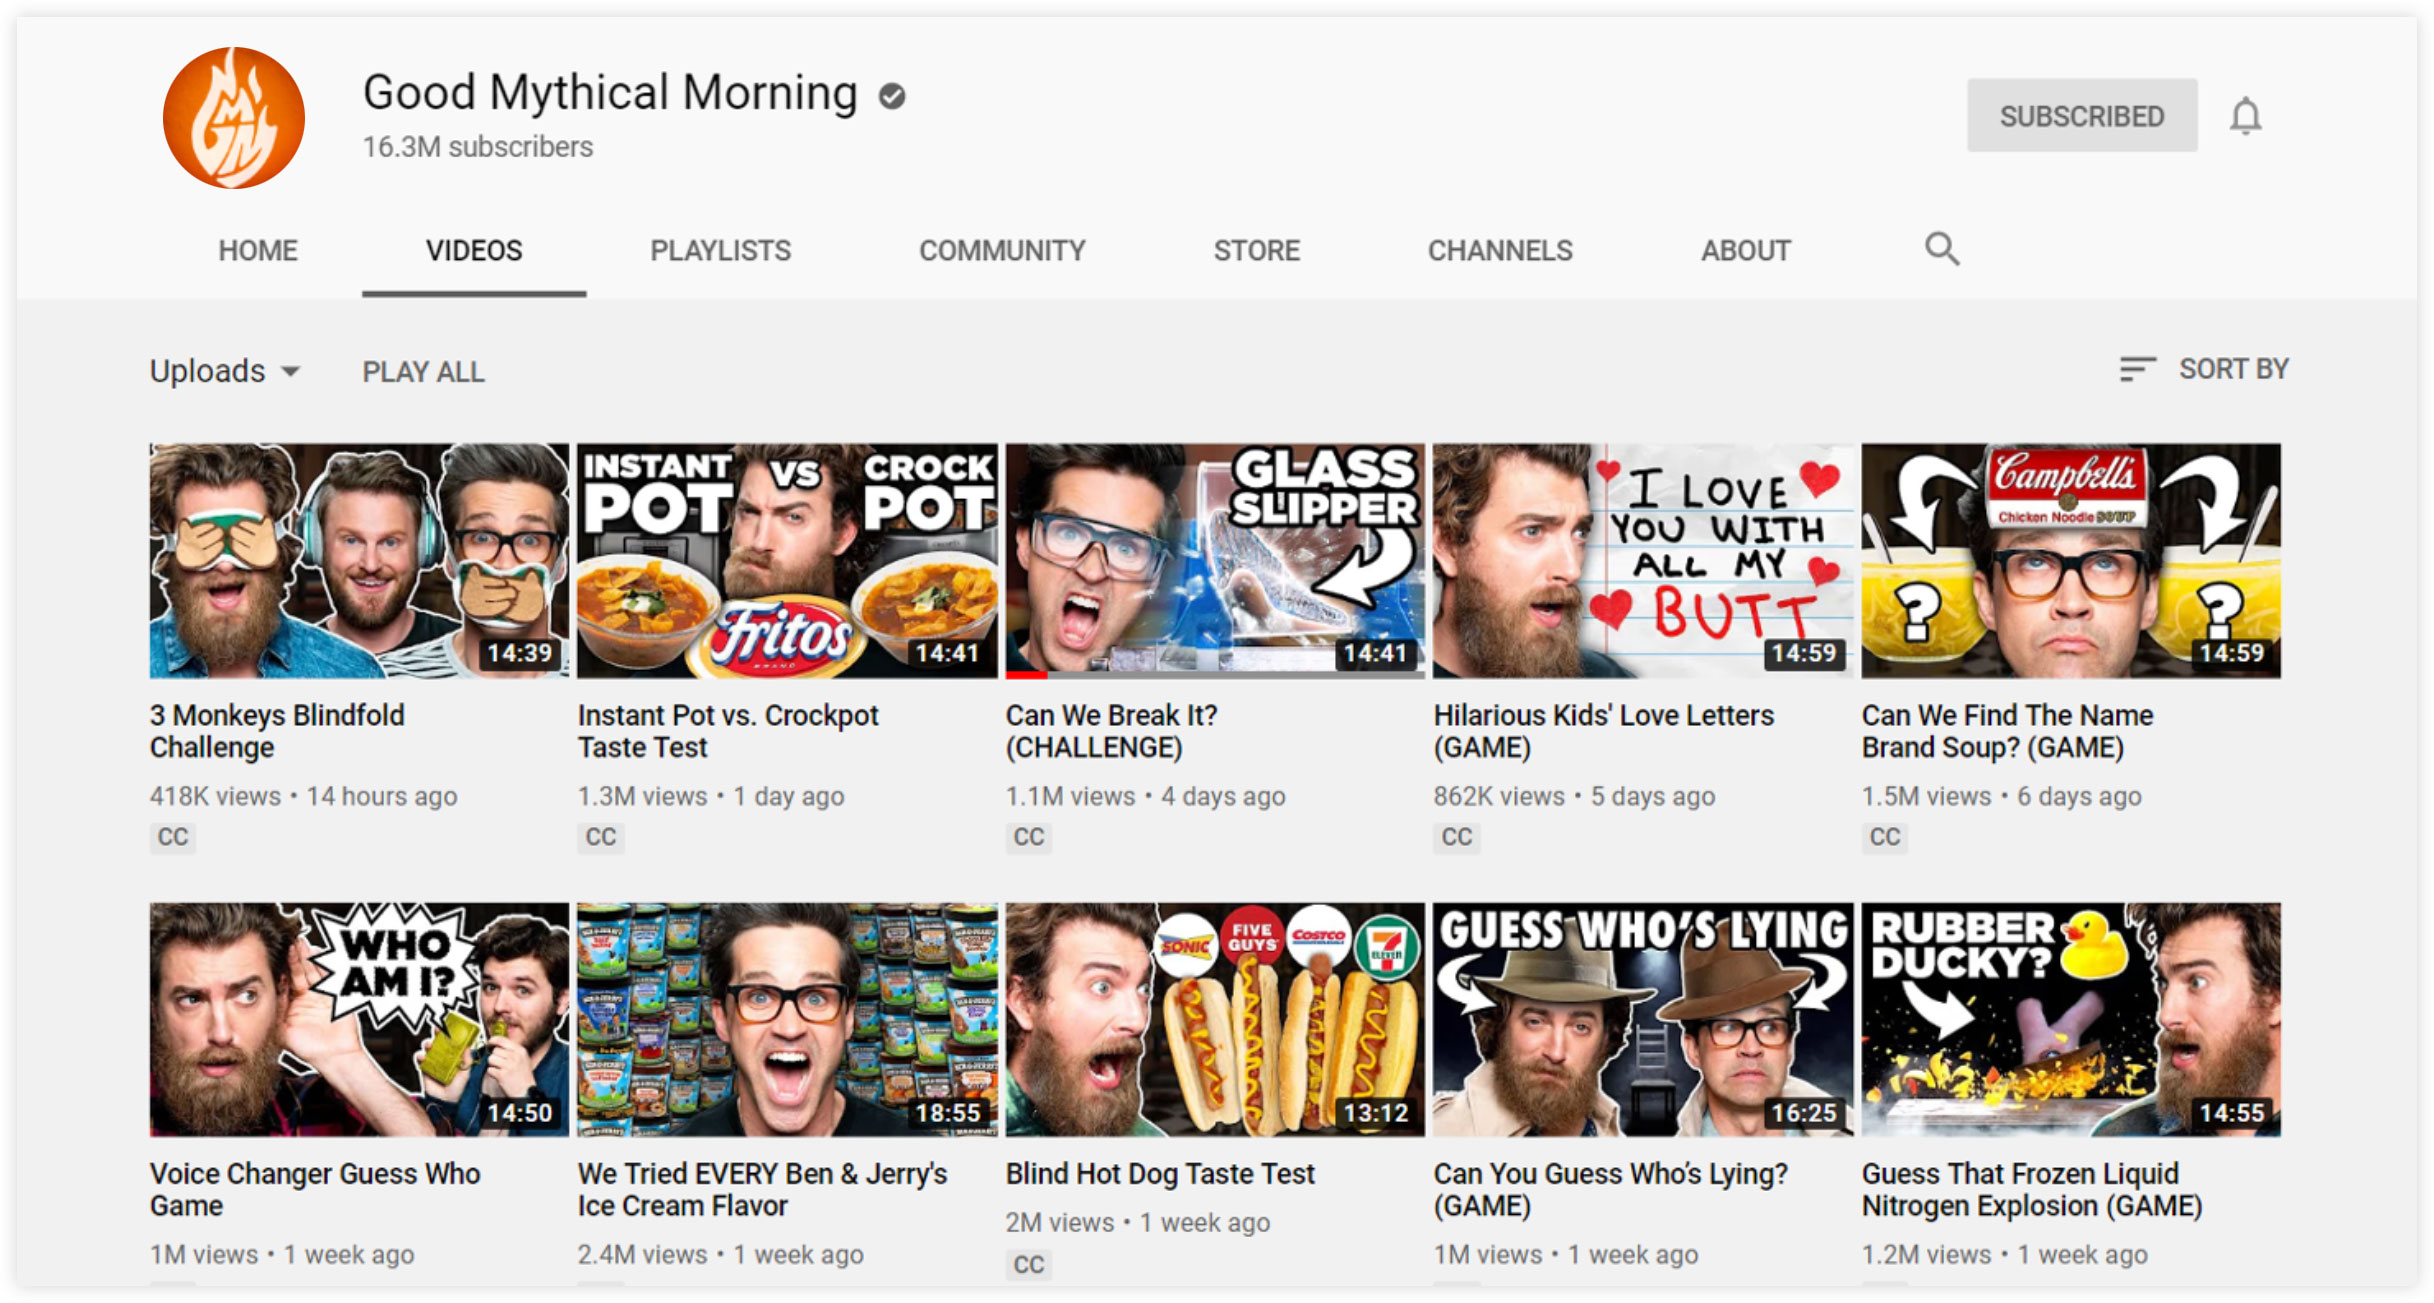 Good Mythical Morning YouTube Channel